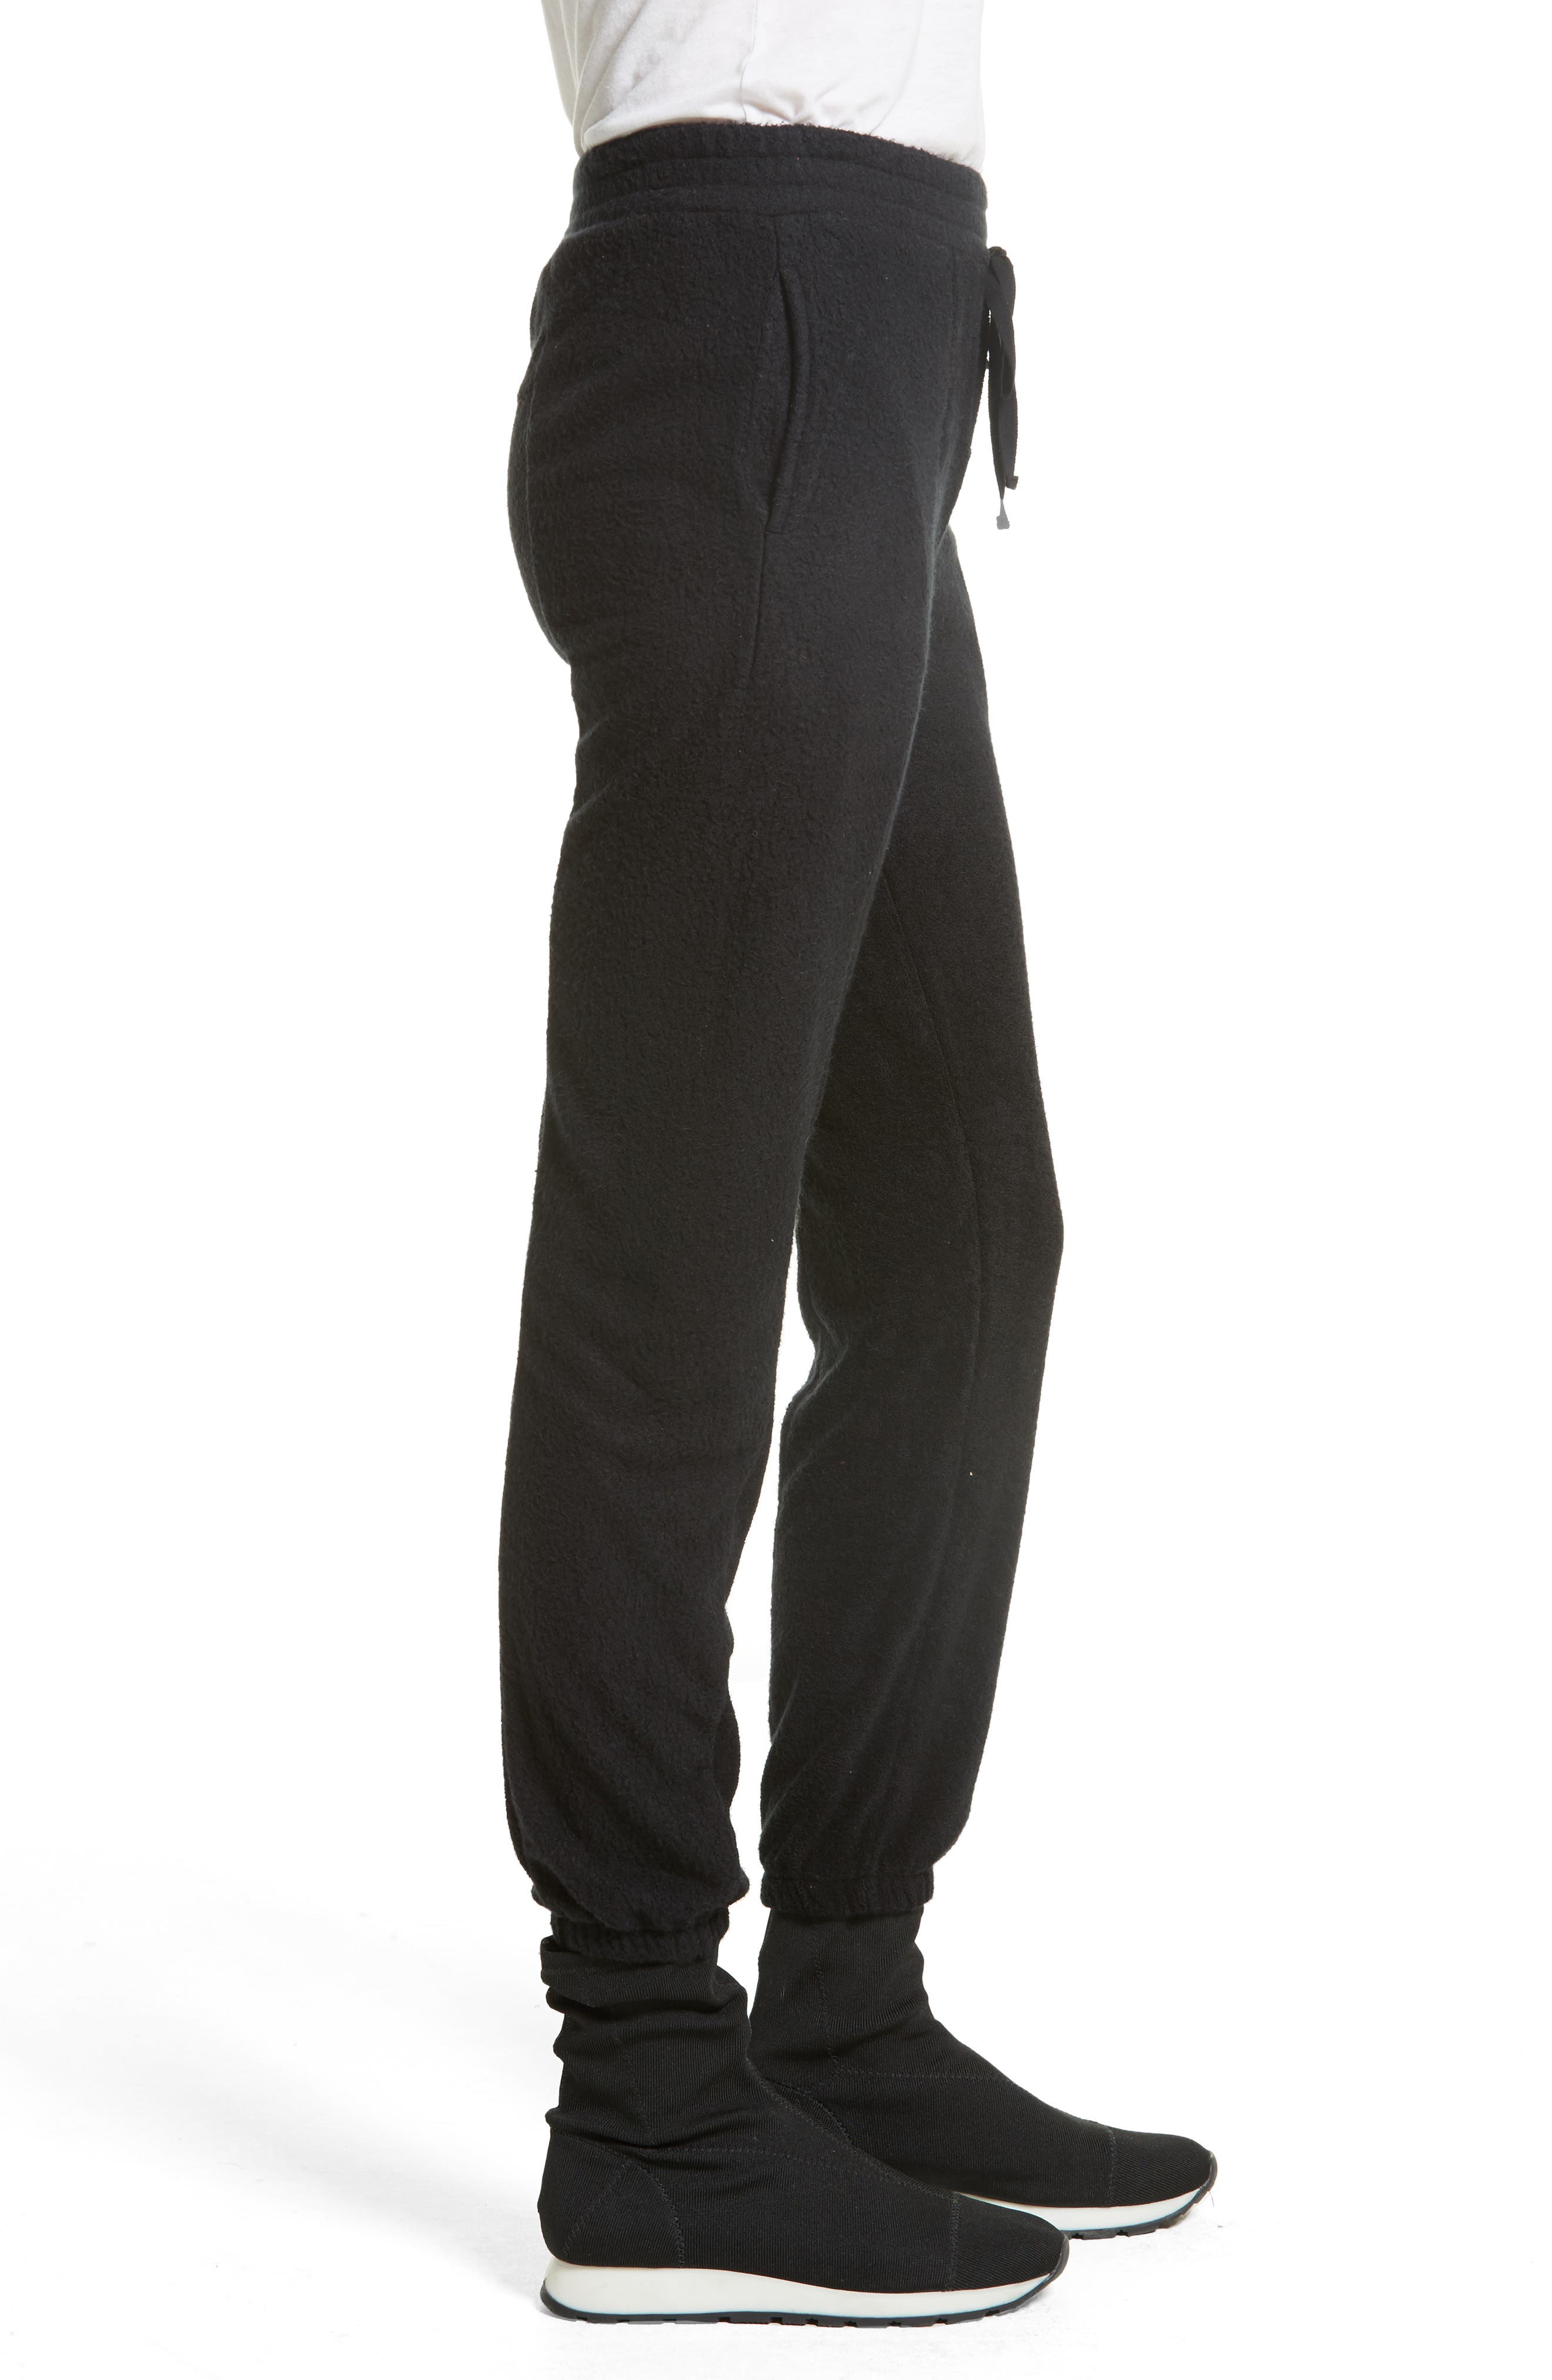 All Day All Night Jogger Pants,                             Alternate thumbnail 3, color,                             001